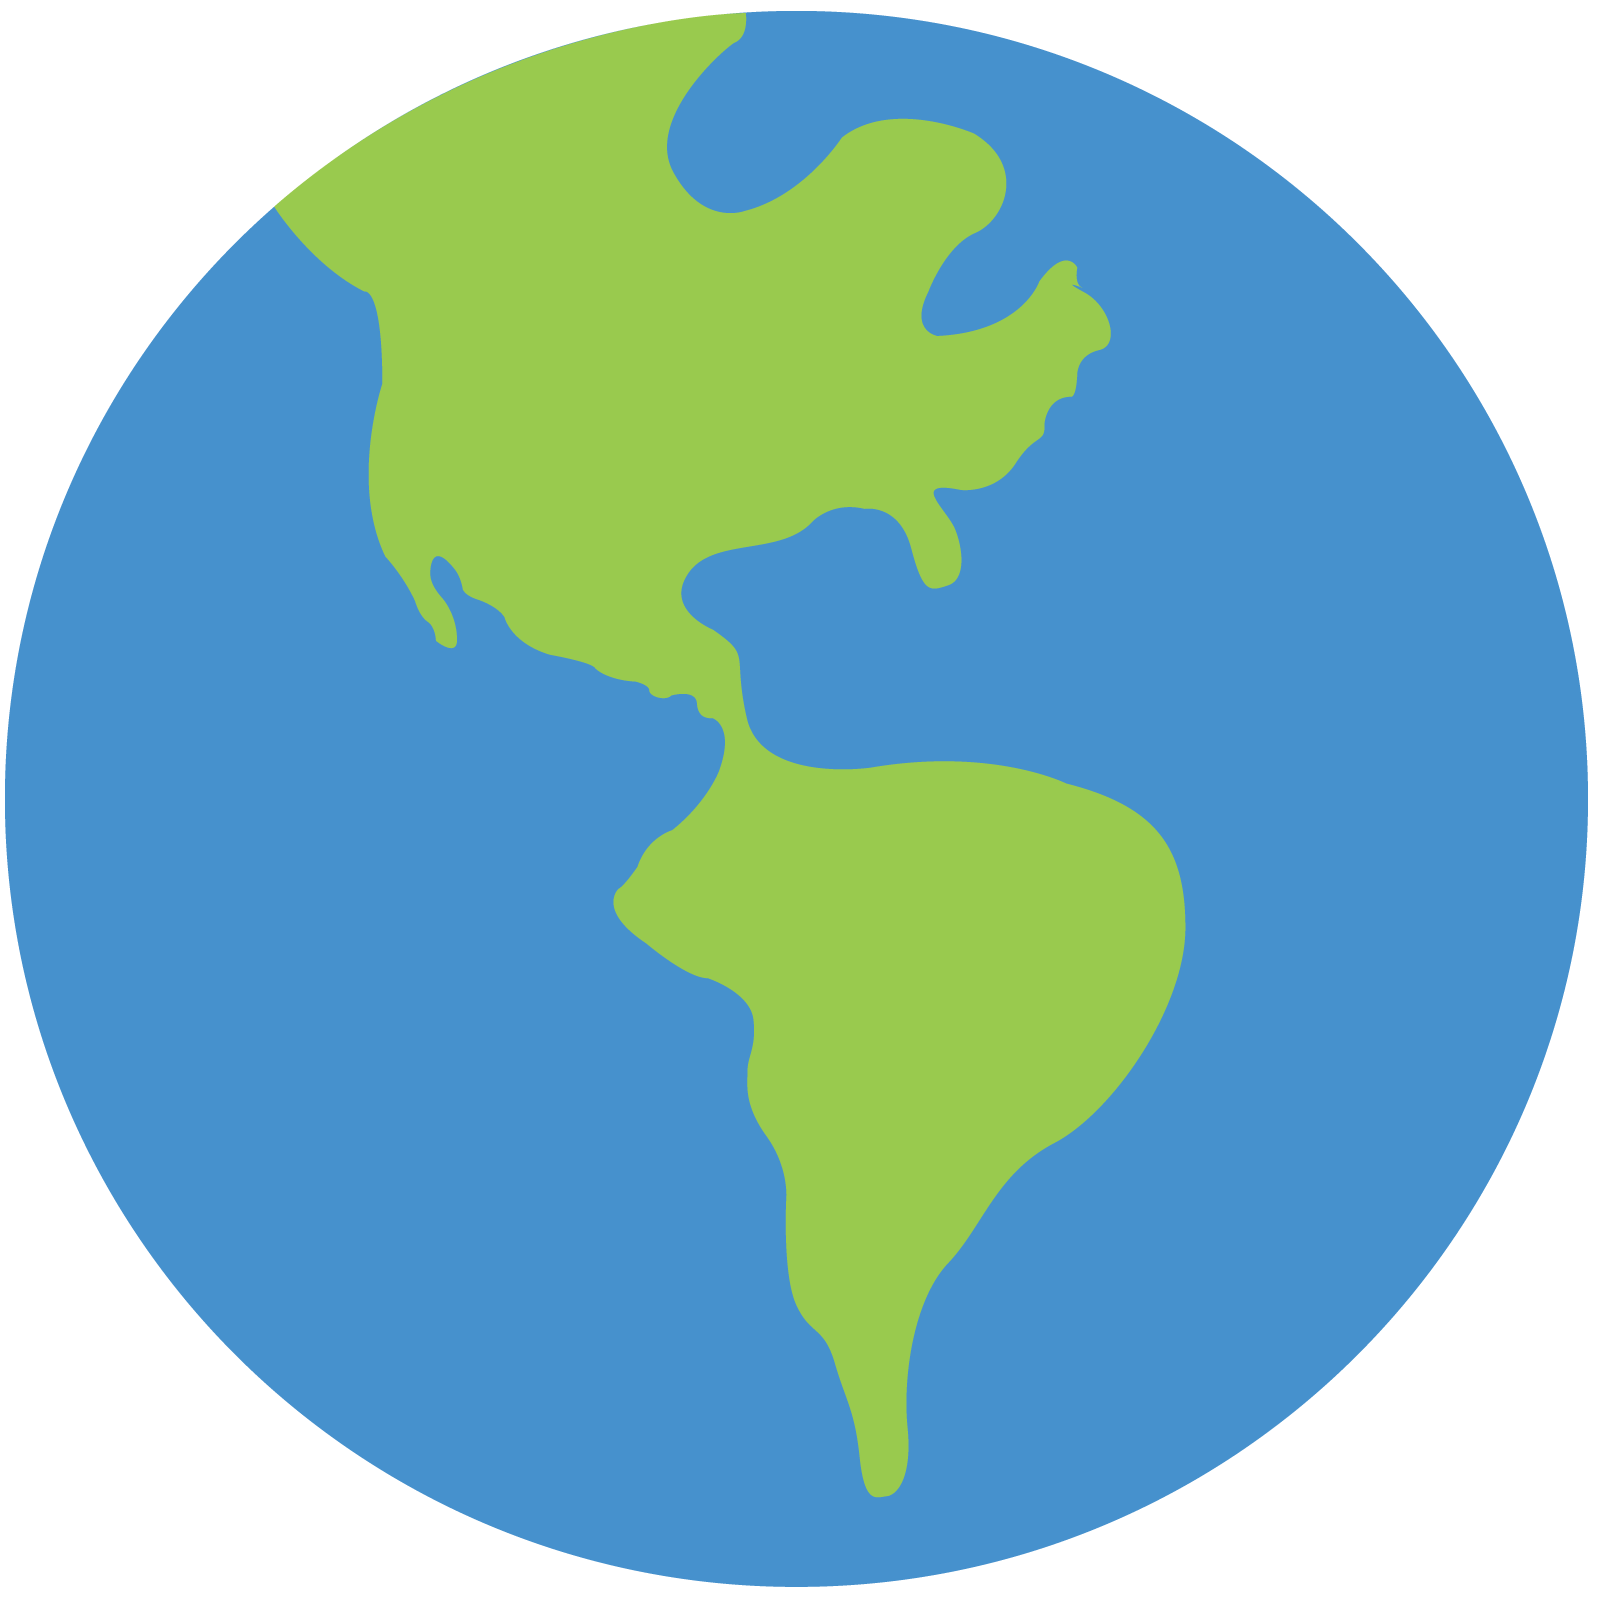 World vector png. Safari sustainability icon free